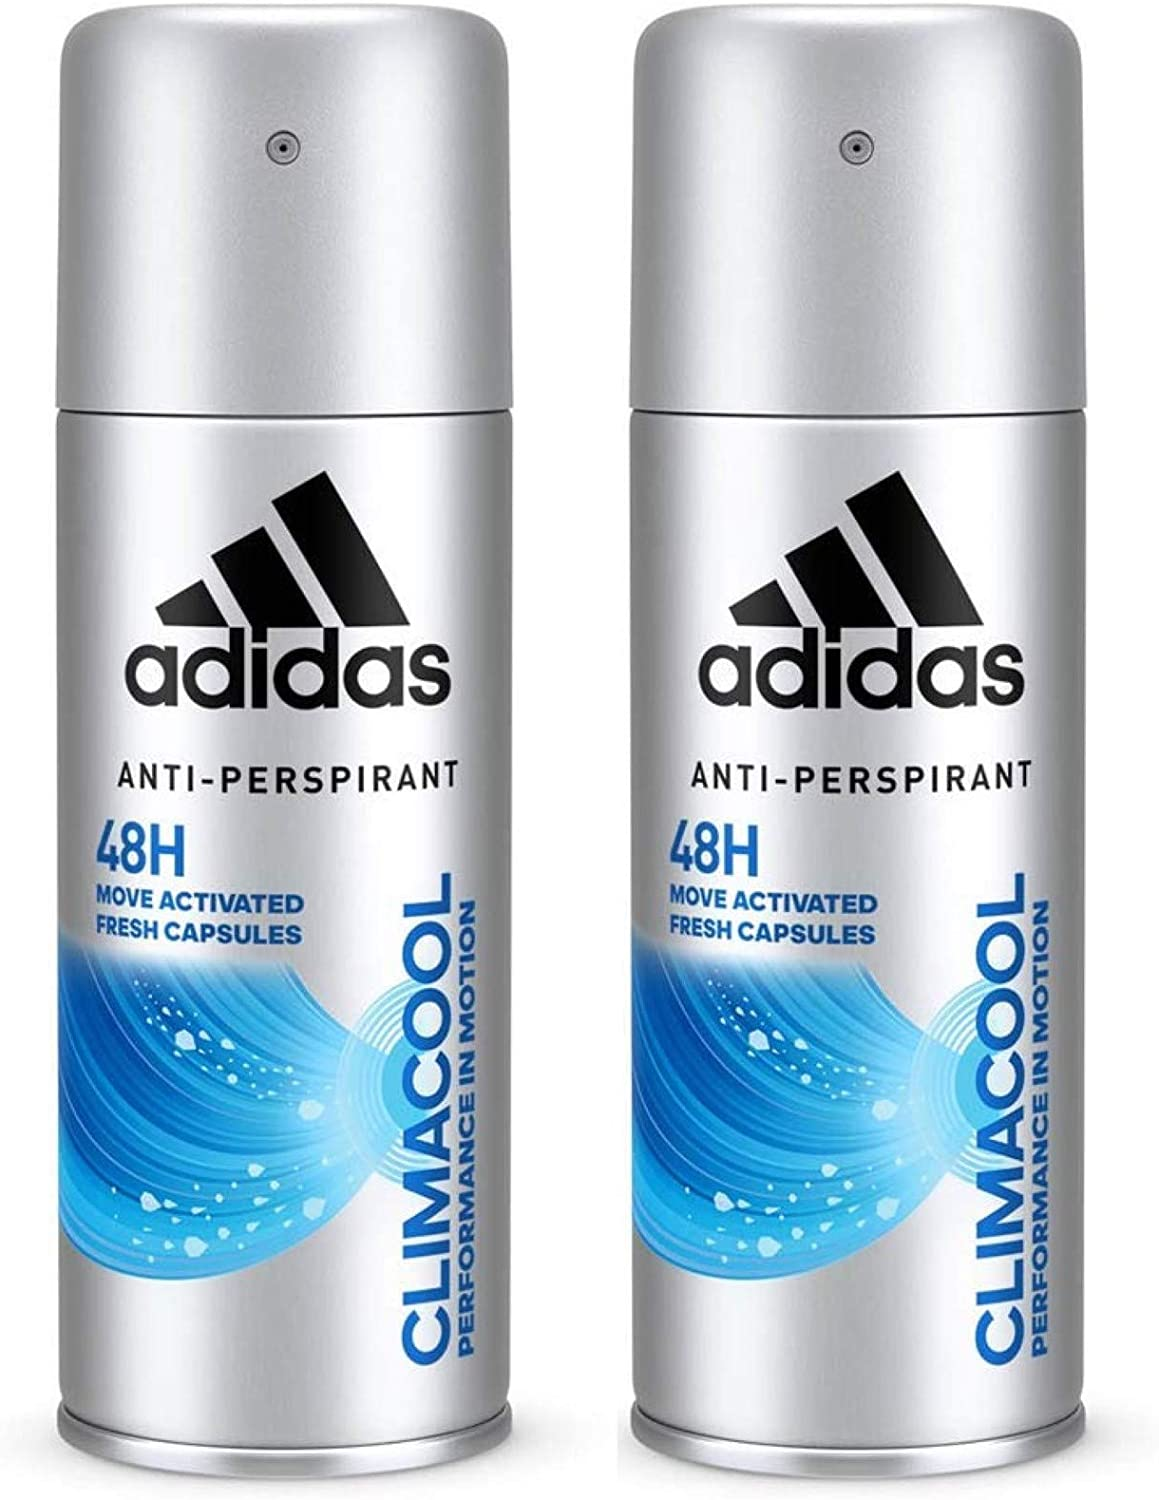 adidas Climacool Deodorant Spray, Antiperspirant Deodorant with Fresh Fragrance and Long-lasting Protection Against Sweat, pH Skin-Friendly, 2 x 150 ...